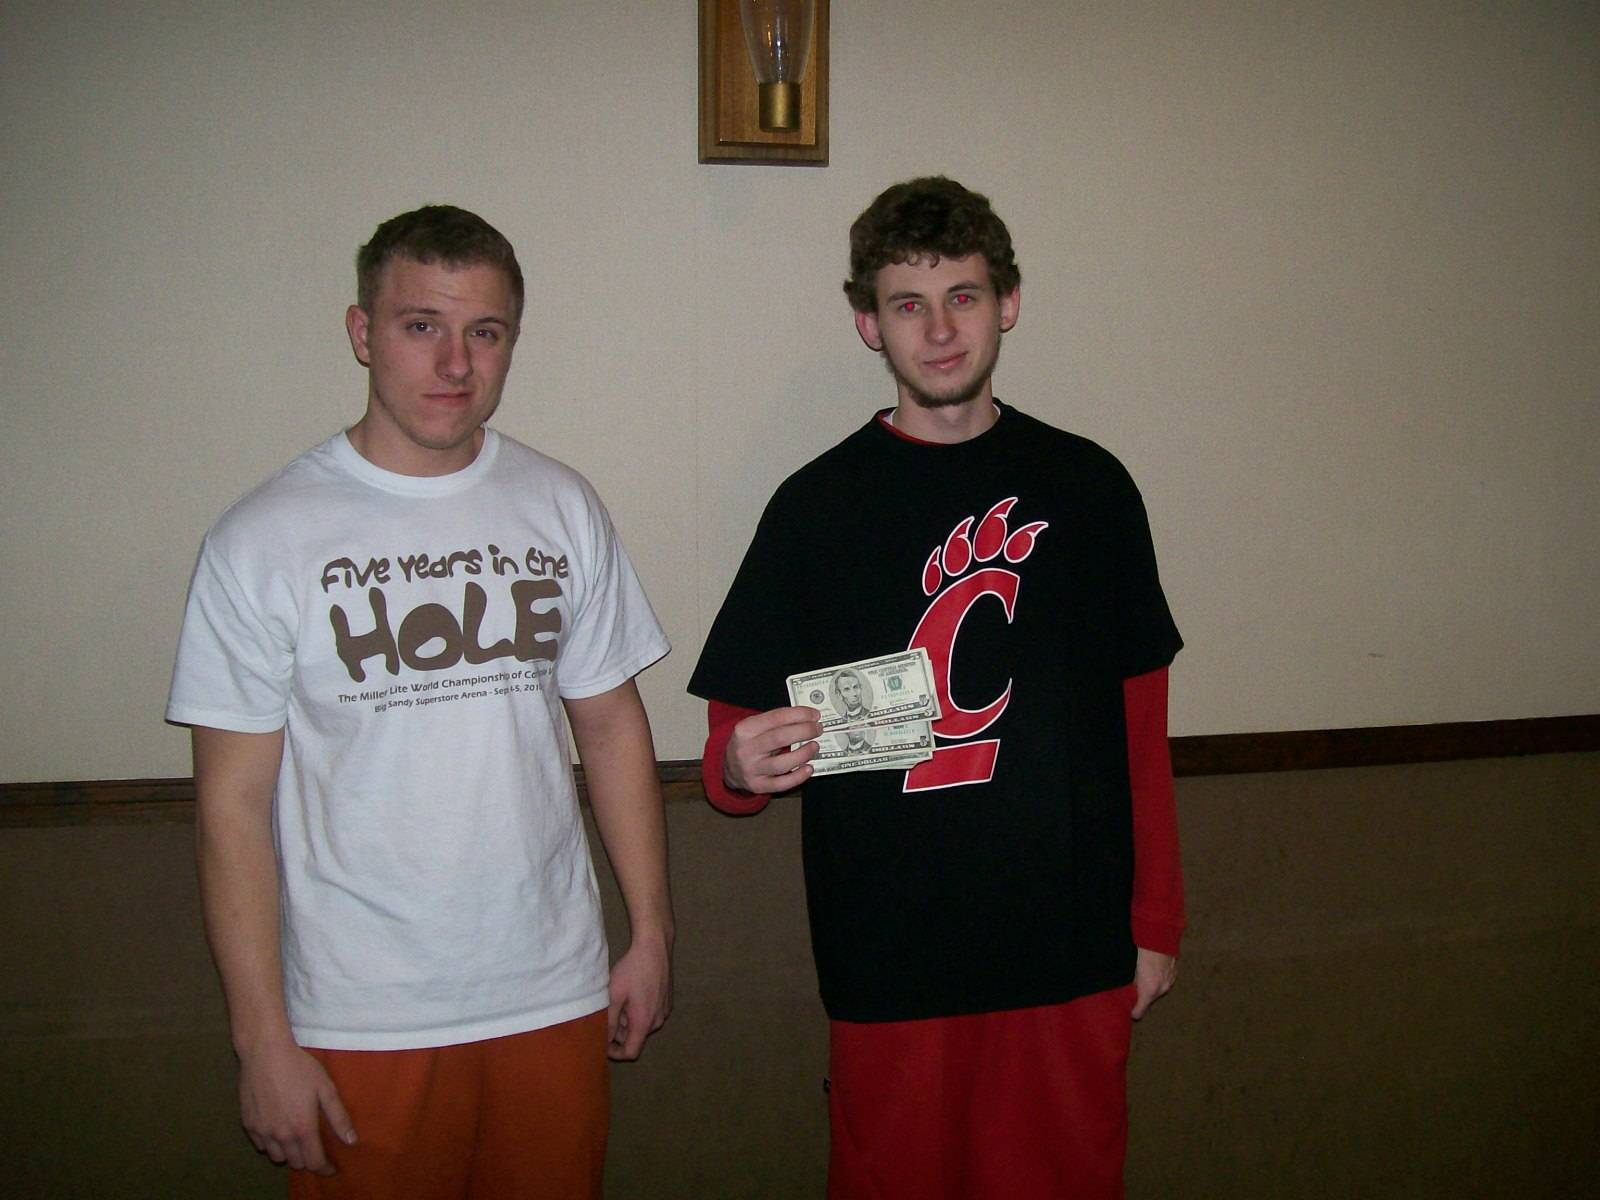 3rd place doubles - Cody and Kevin Henderson (Jan 15, 2011)